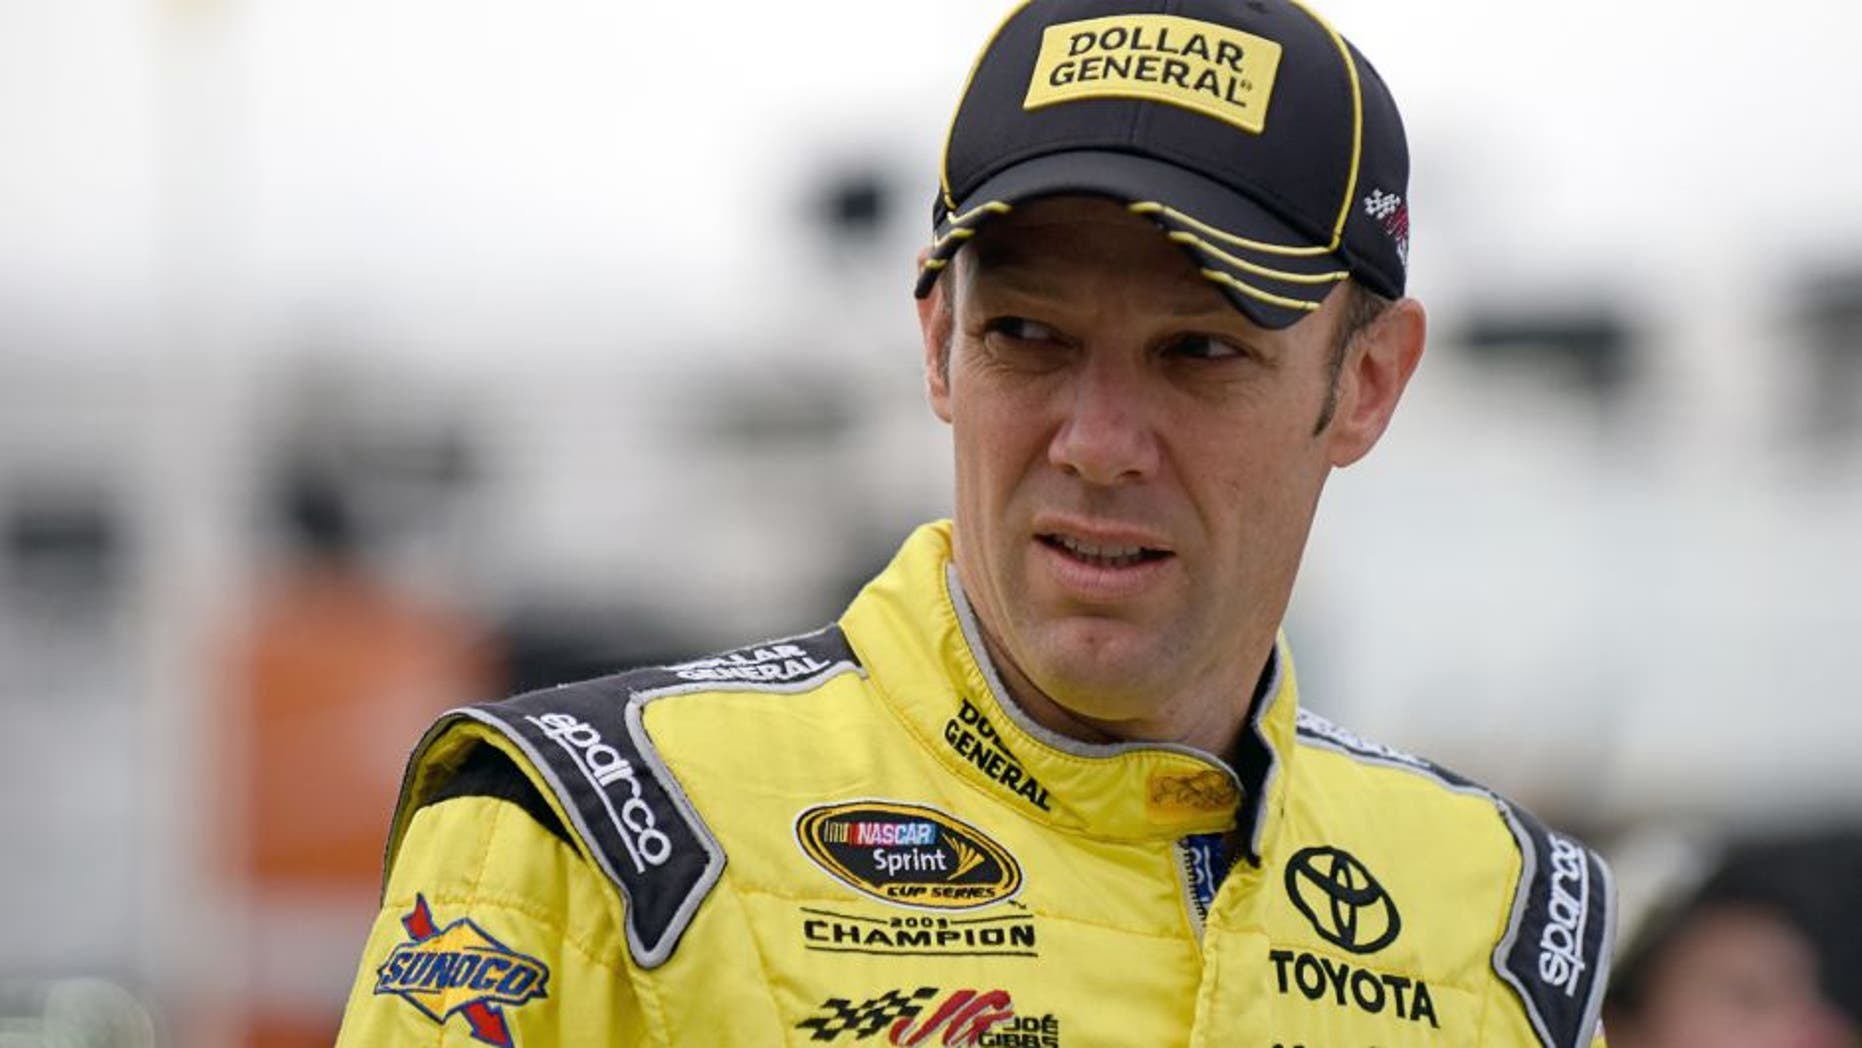 MARTINSVILLE, VA - OCTOBER 31: Matt Kenseth, driver of the #20 Dollar General Toyota, walks through the garage area during practice for the NASCAR Sprint Cup Series Goody's Headache Relief Shot 500 at Martinsville Speedway on October 31, 2015 in Martinsville, Virginia. (Photo by Jonathan Moore/Getty Images)